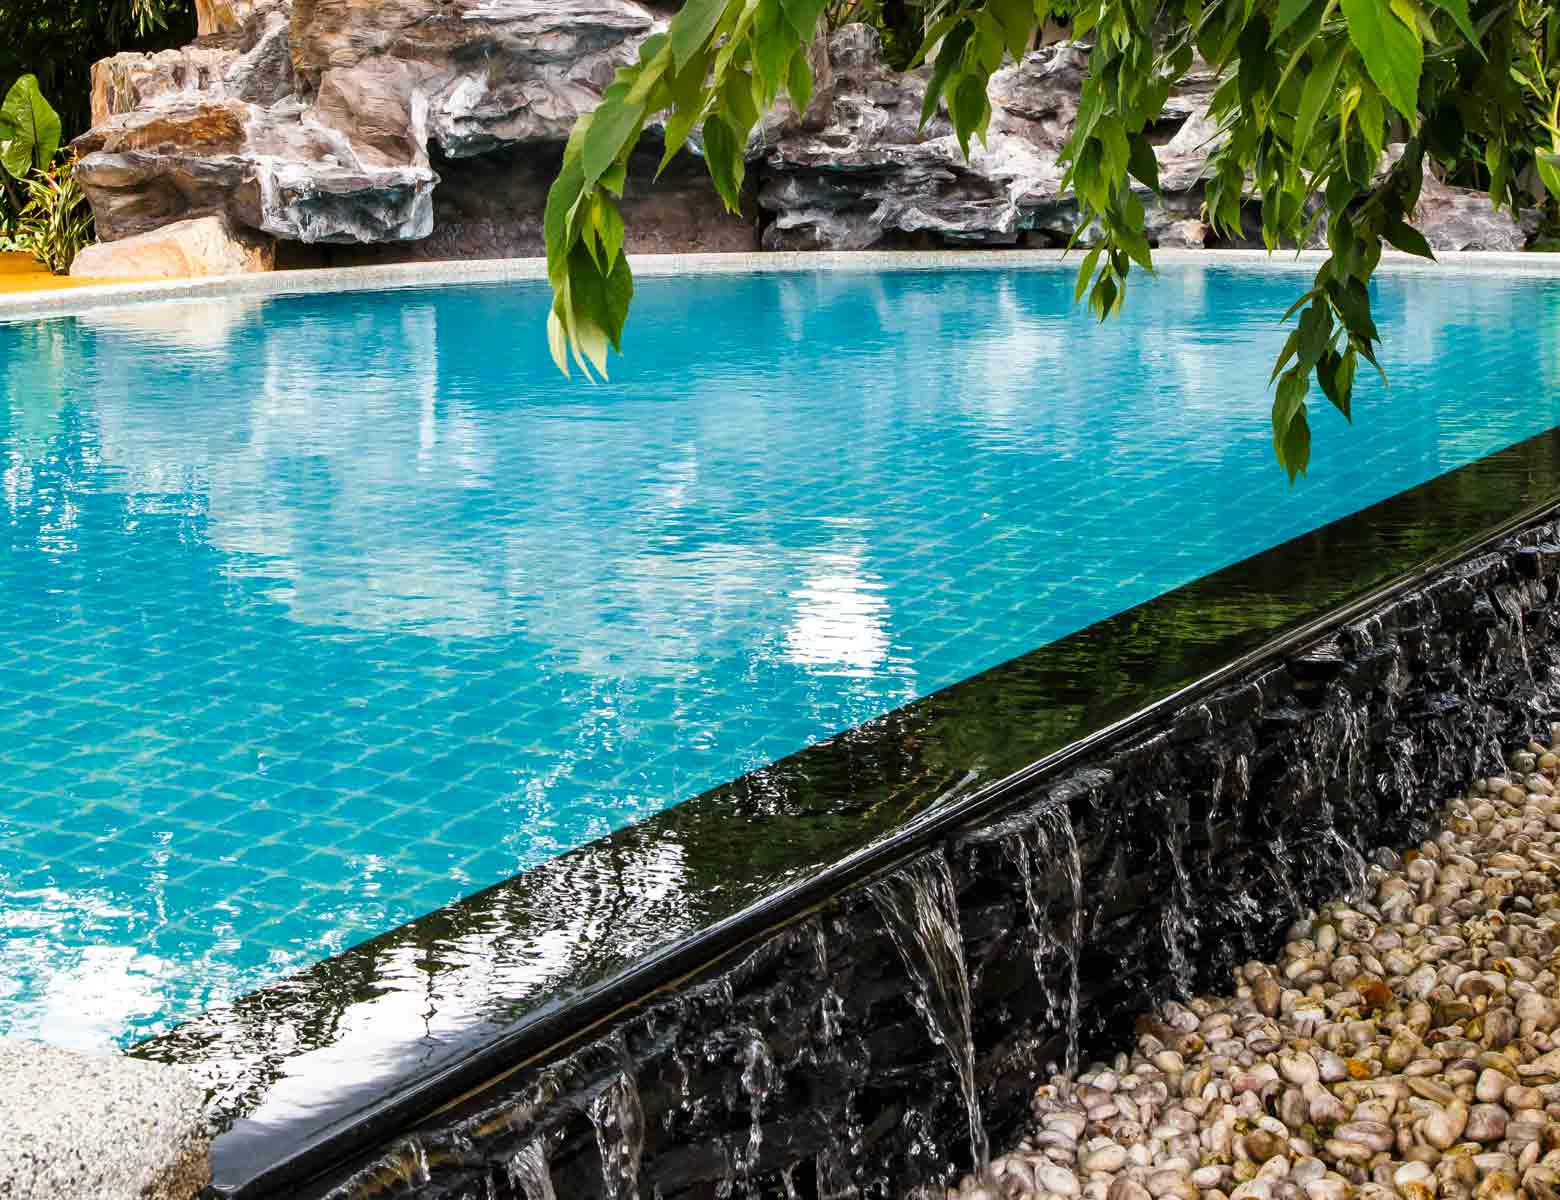 The salt water pool and waterfall at Mala Dhara Eco Resort in Doi Saket area of Chiang Mai Thailand.